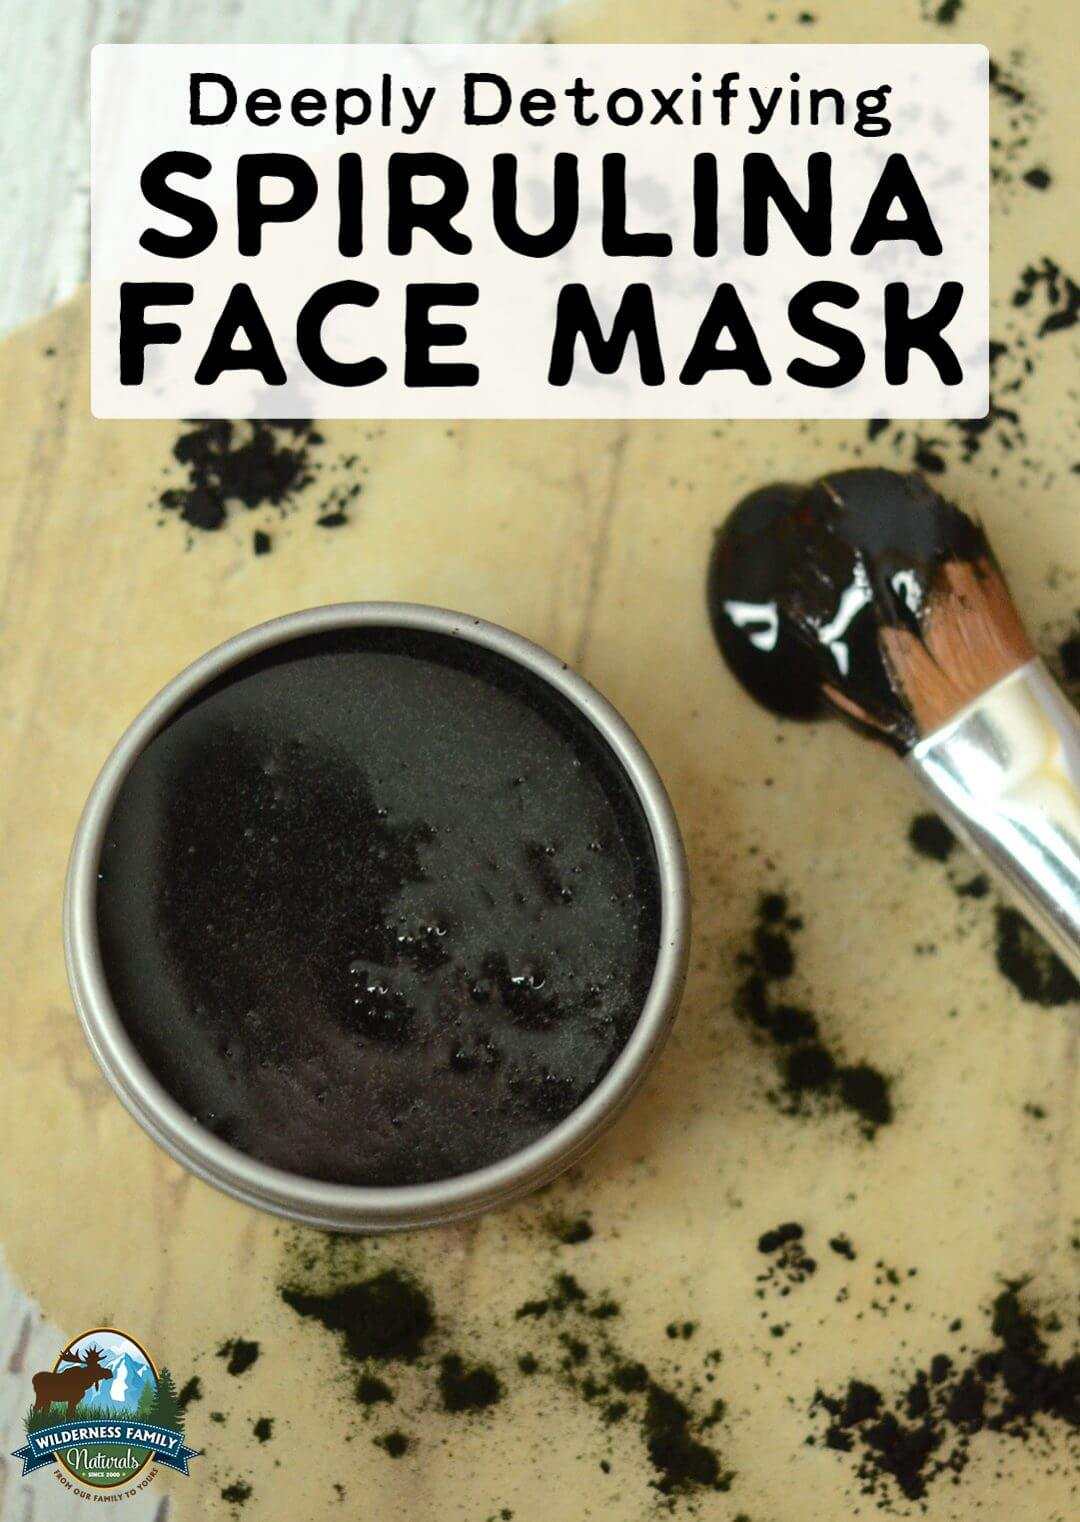 Deeply Detoxifying Spirulina Face Mask | Draw impurities from the skin, fight acne, and even brighten your complexion with this deeply detoxifying spirulina face mask! With raw honey, activated charcoal, and superfood spirulina, this is natural skincare done right! | WildernessFamilyNaturals.com